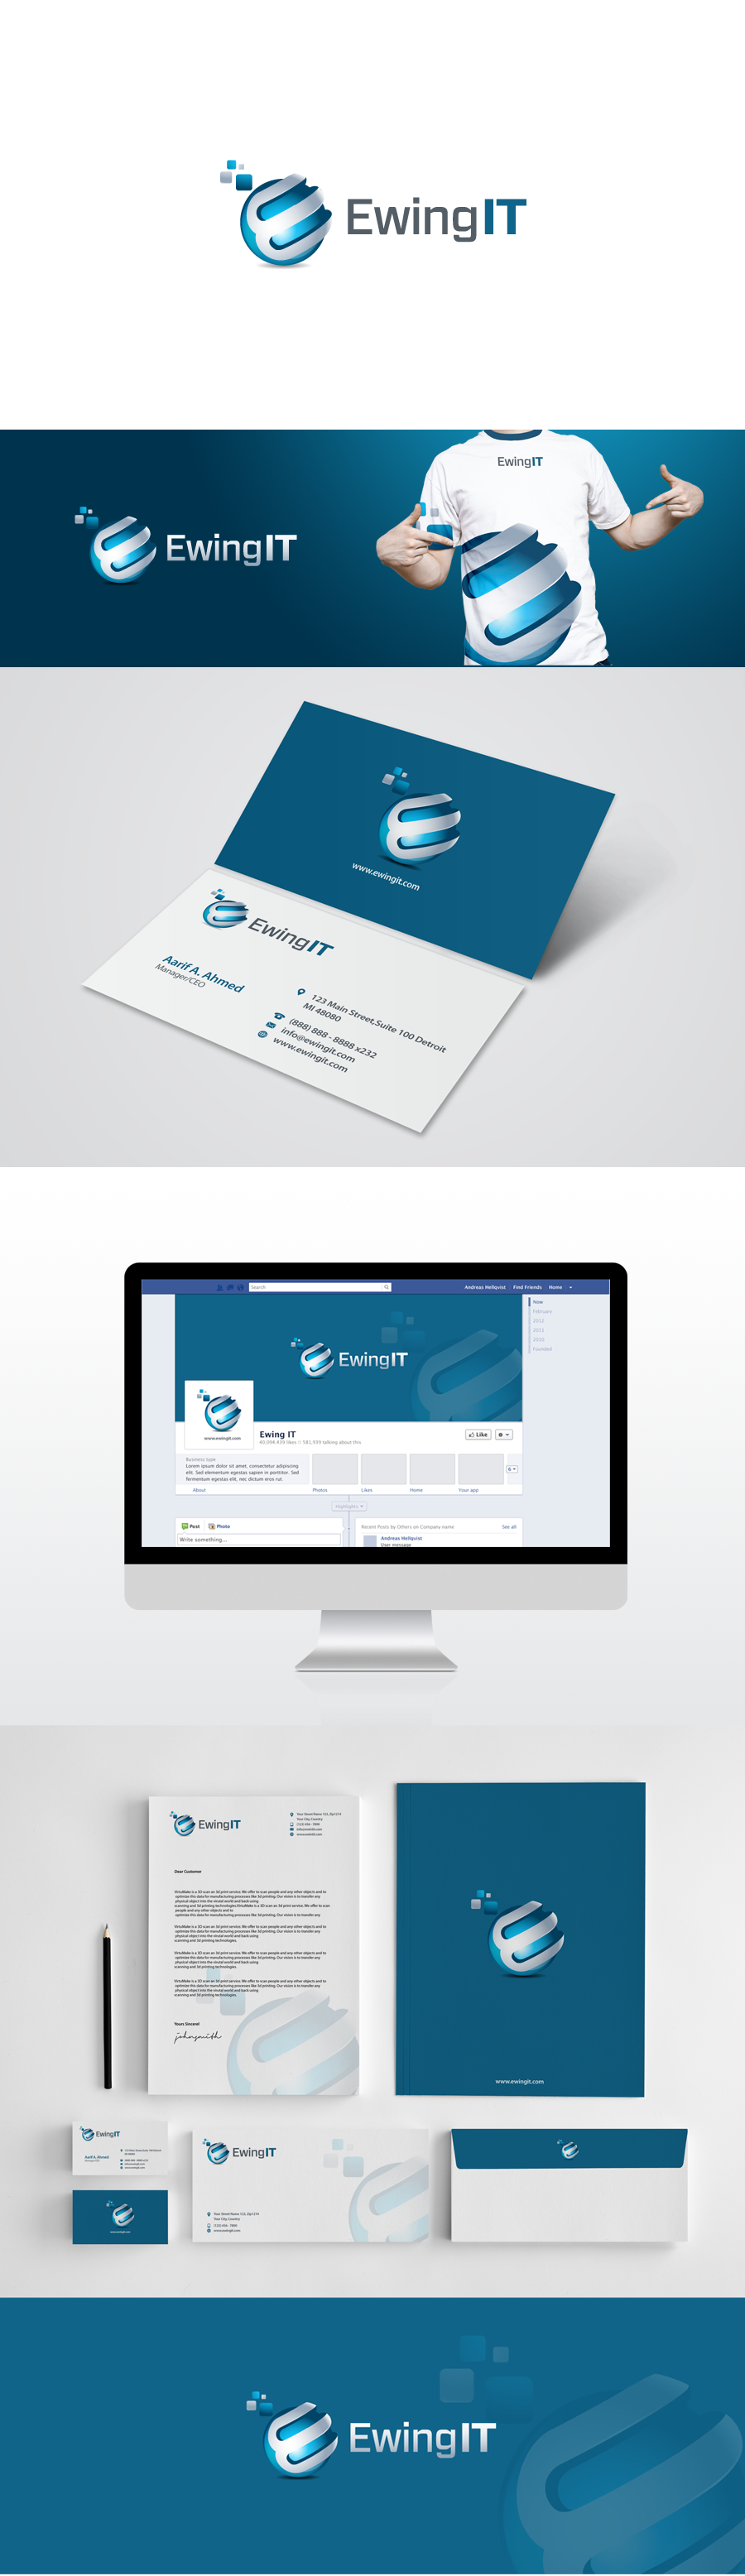 Create a brand for a new professional services IT firm